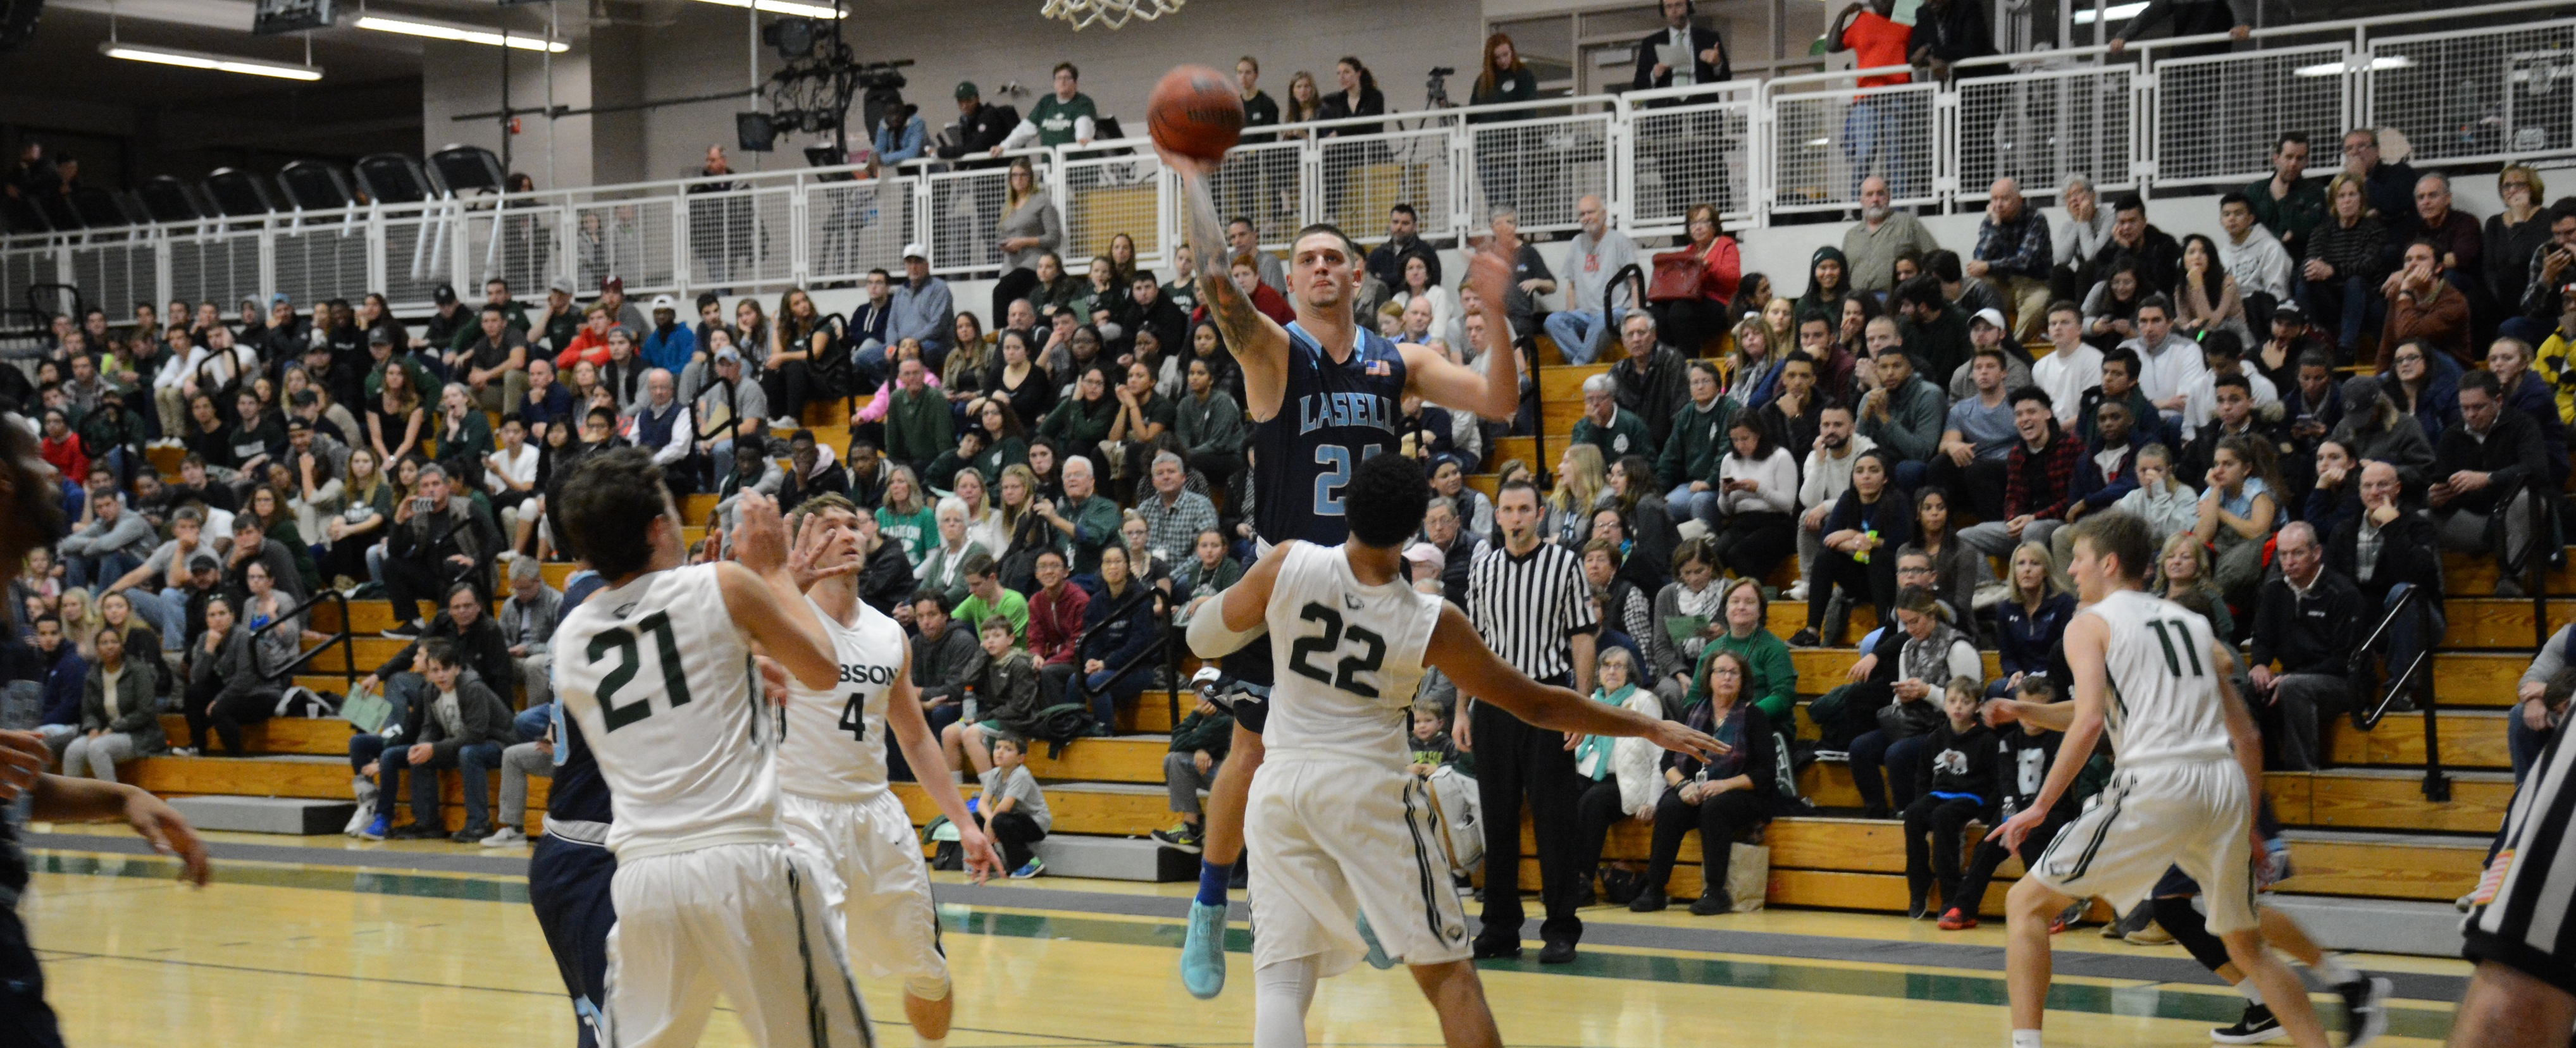 Lasers Drop Season Opener to No. 7 Babson